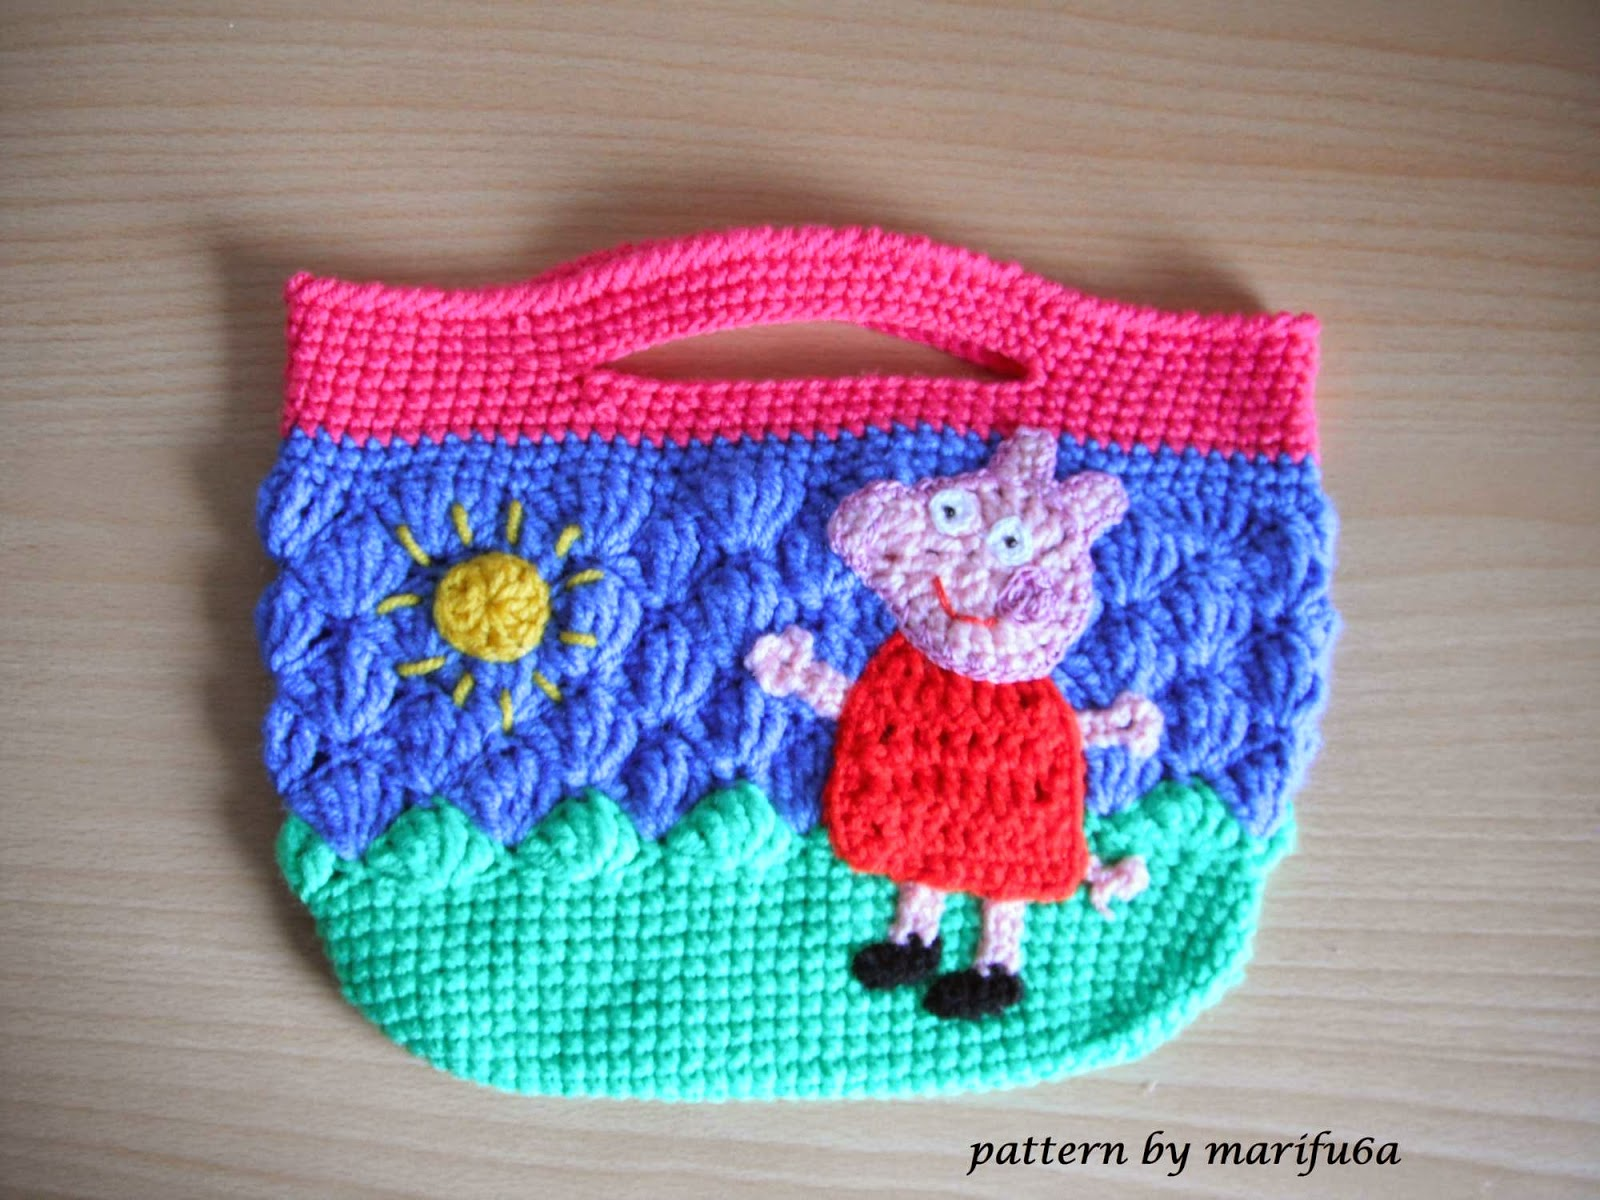 How To Crochet Peppa Pig Purse Bag Free Pattern Tutorial By Marifu6a : Free crochet patterns and video tutorials: how to crochet ...